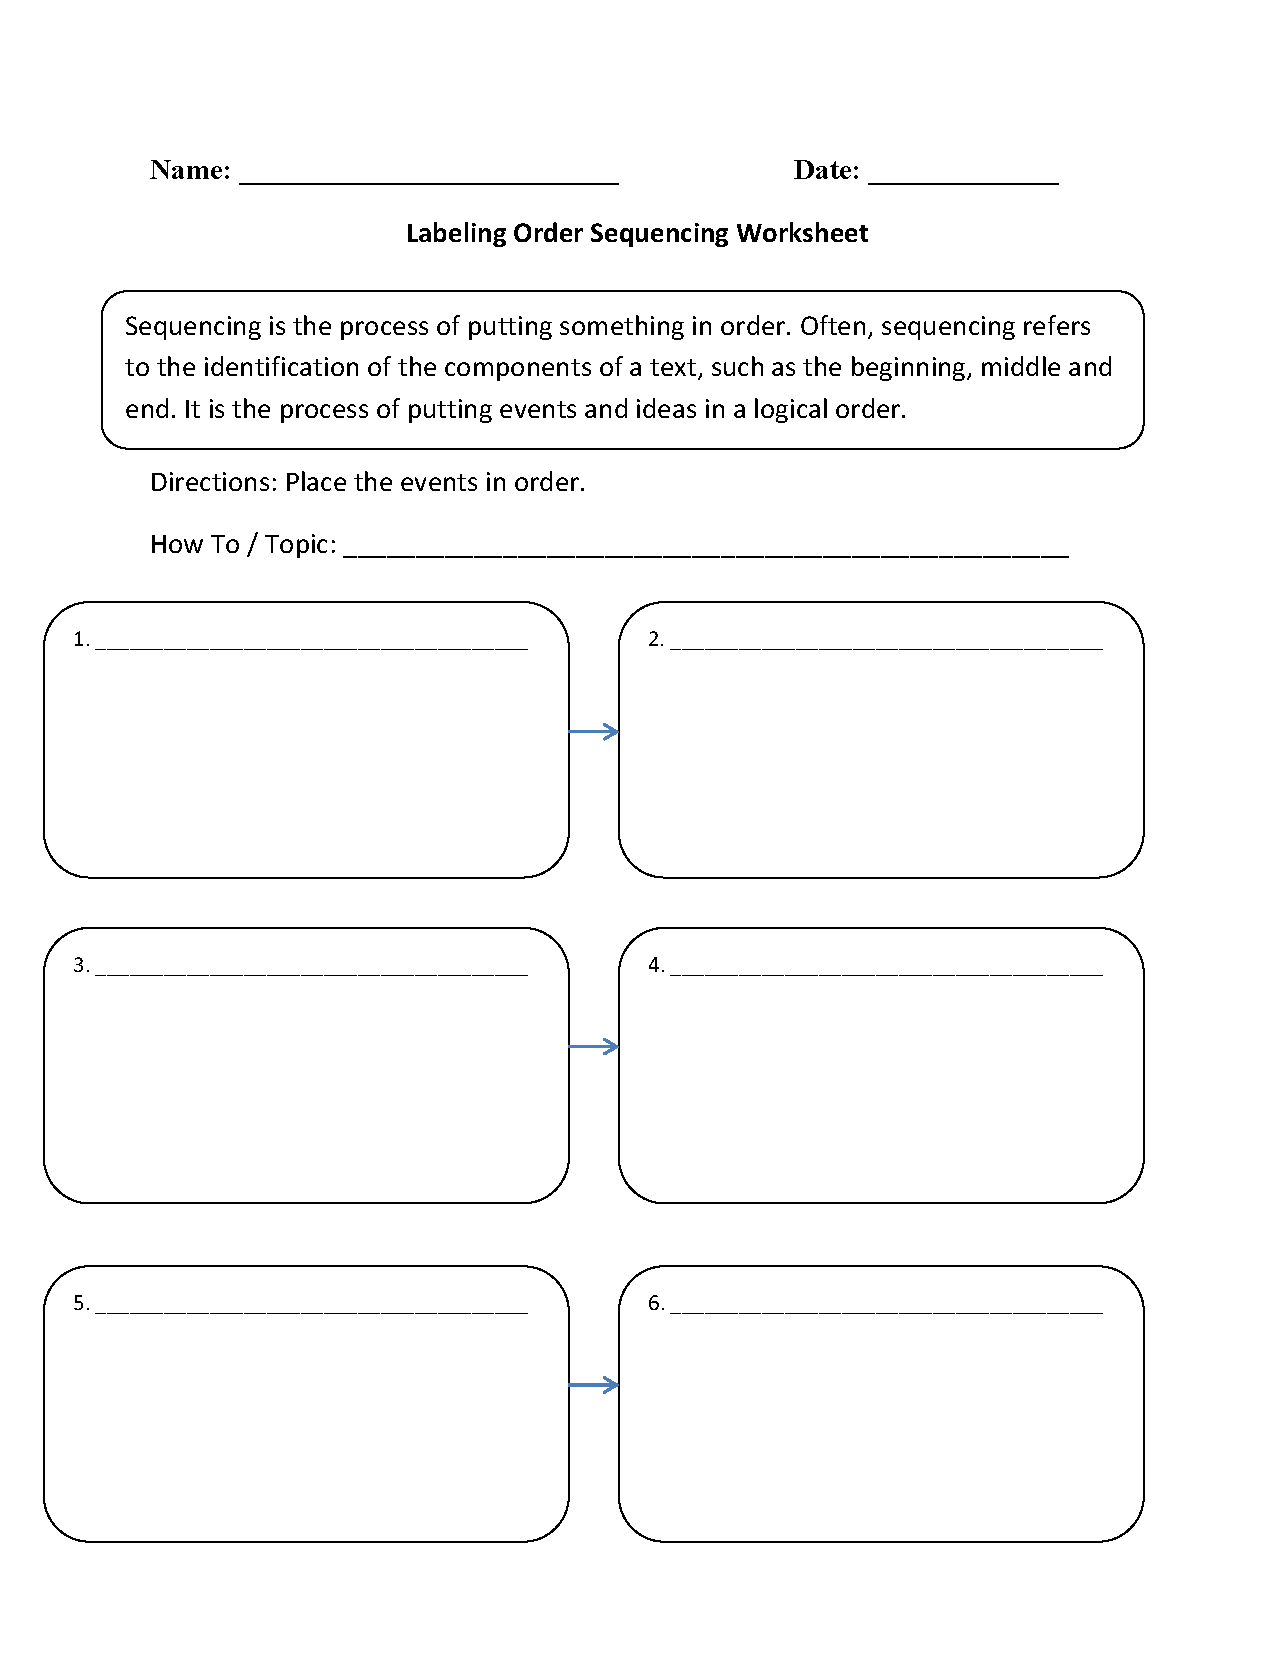 sequence of events worksheets 6th grade sequencing worksheet planting a seed have fun. Black Bedroom Furniture Sets. Home Design Ideas